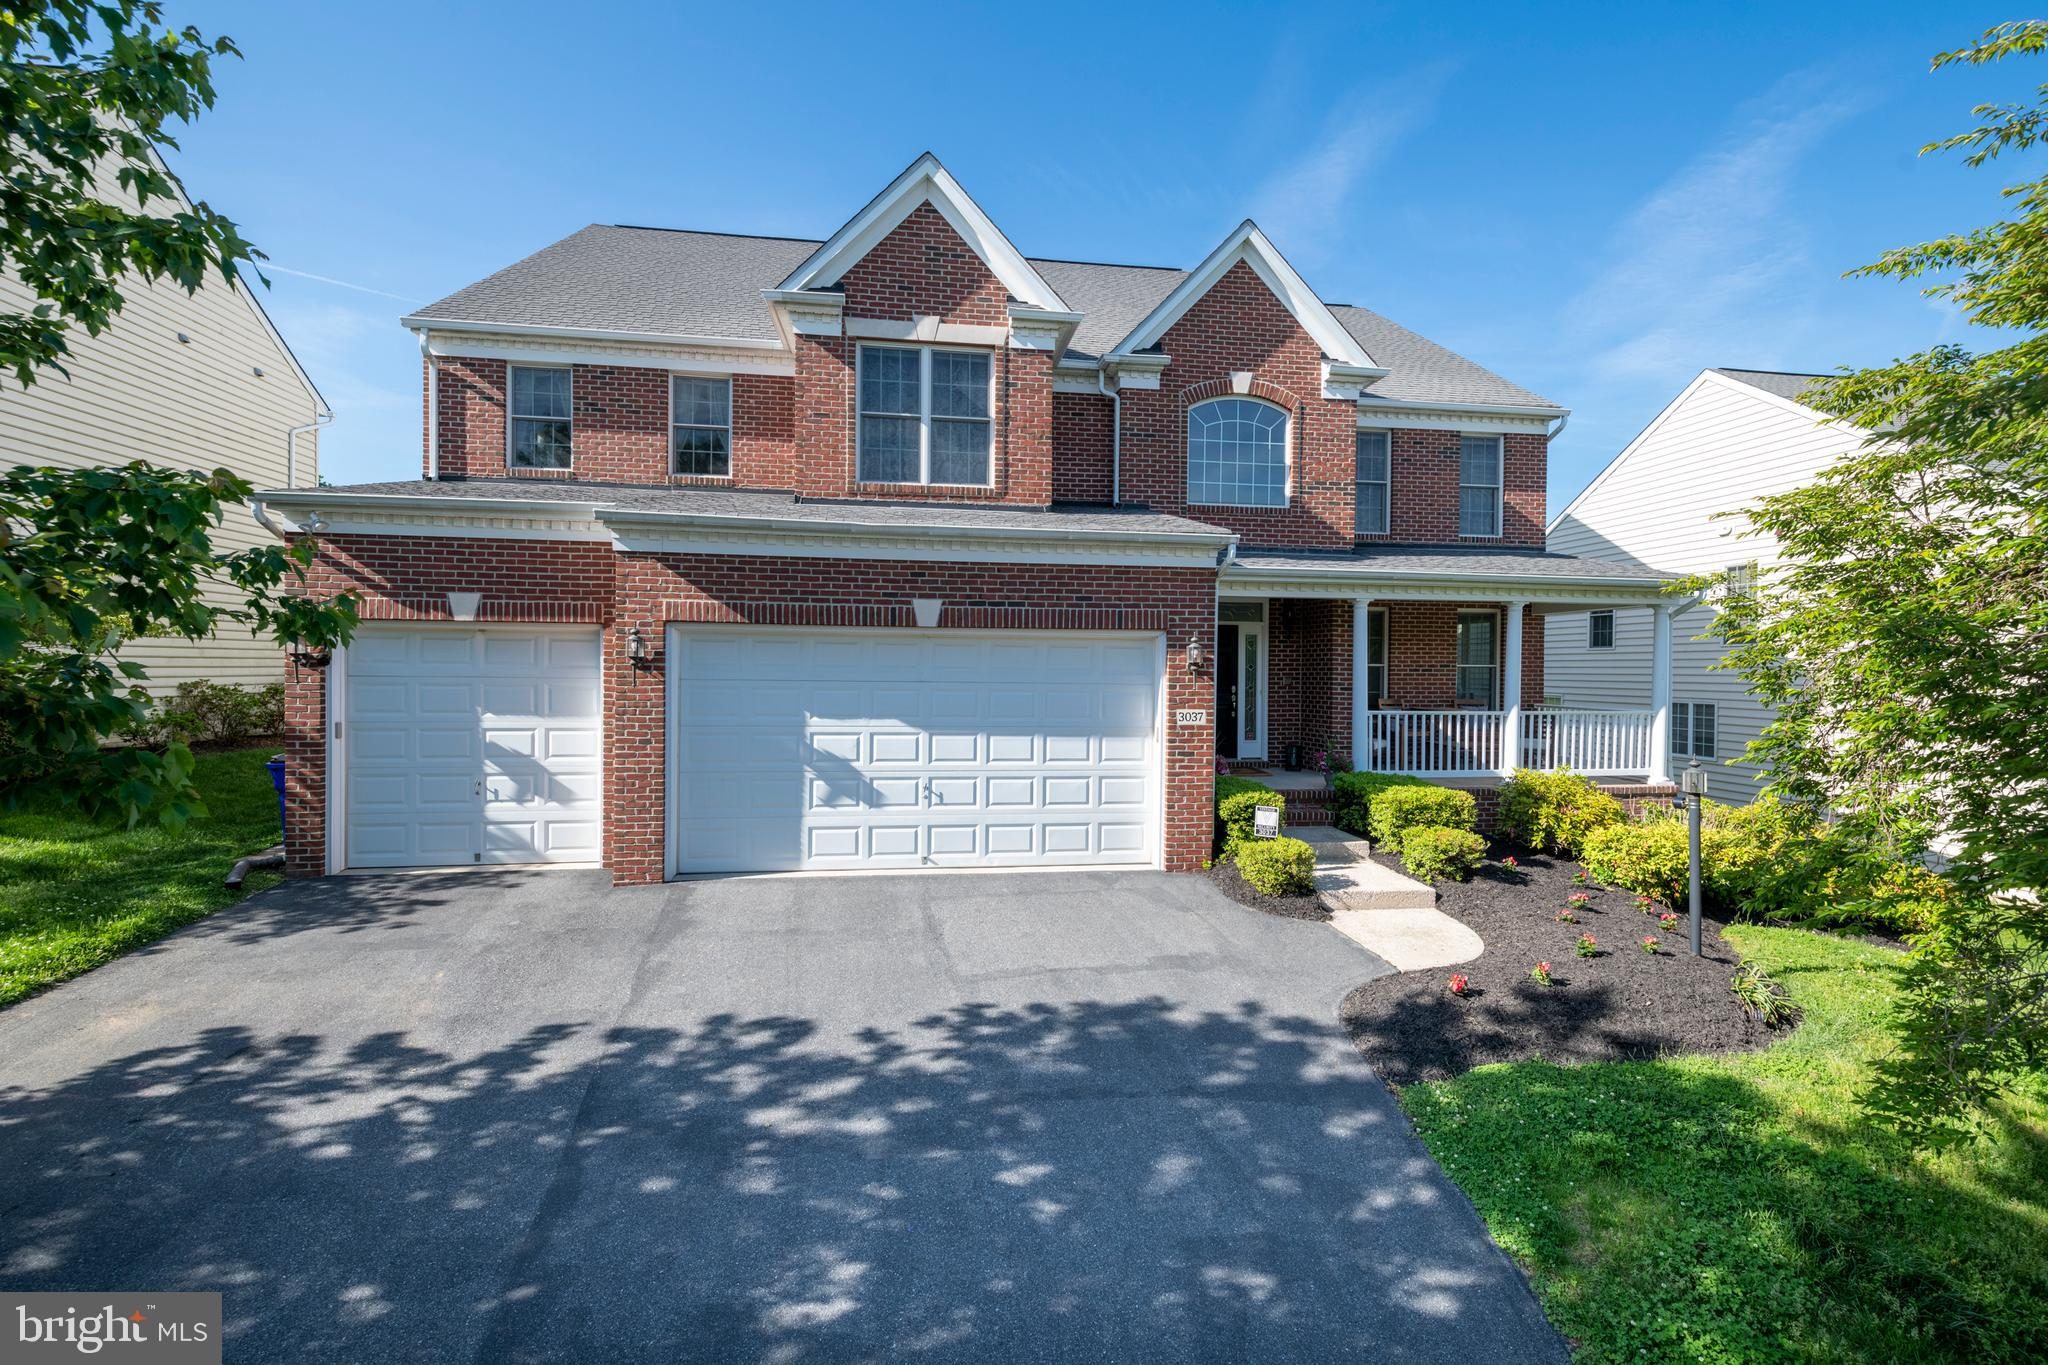 This grand, brick-front, 6 bedroom, 6 full-bath, 3-car garage colonial on a quiet cul-de-sac opposit